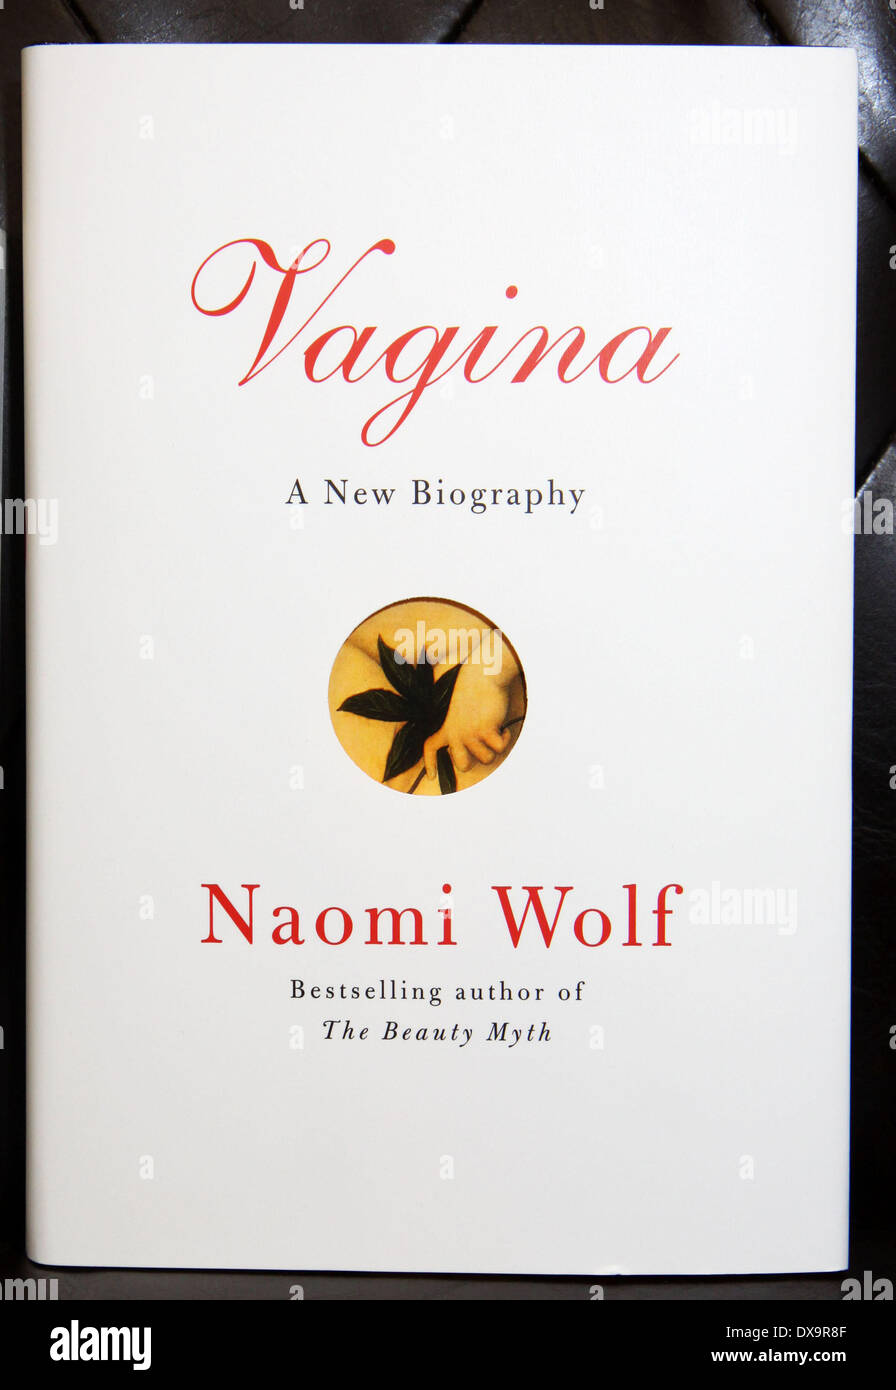 Atmosphere - The Book Naomi Wolf holds a discussion and signs copies of her  book 'Vagina' at the Strand Bookstore in New York City Featuring:  Atmosphere ...